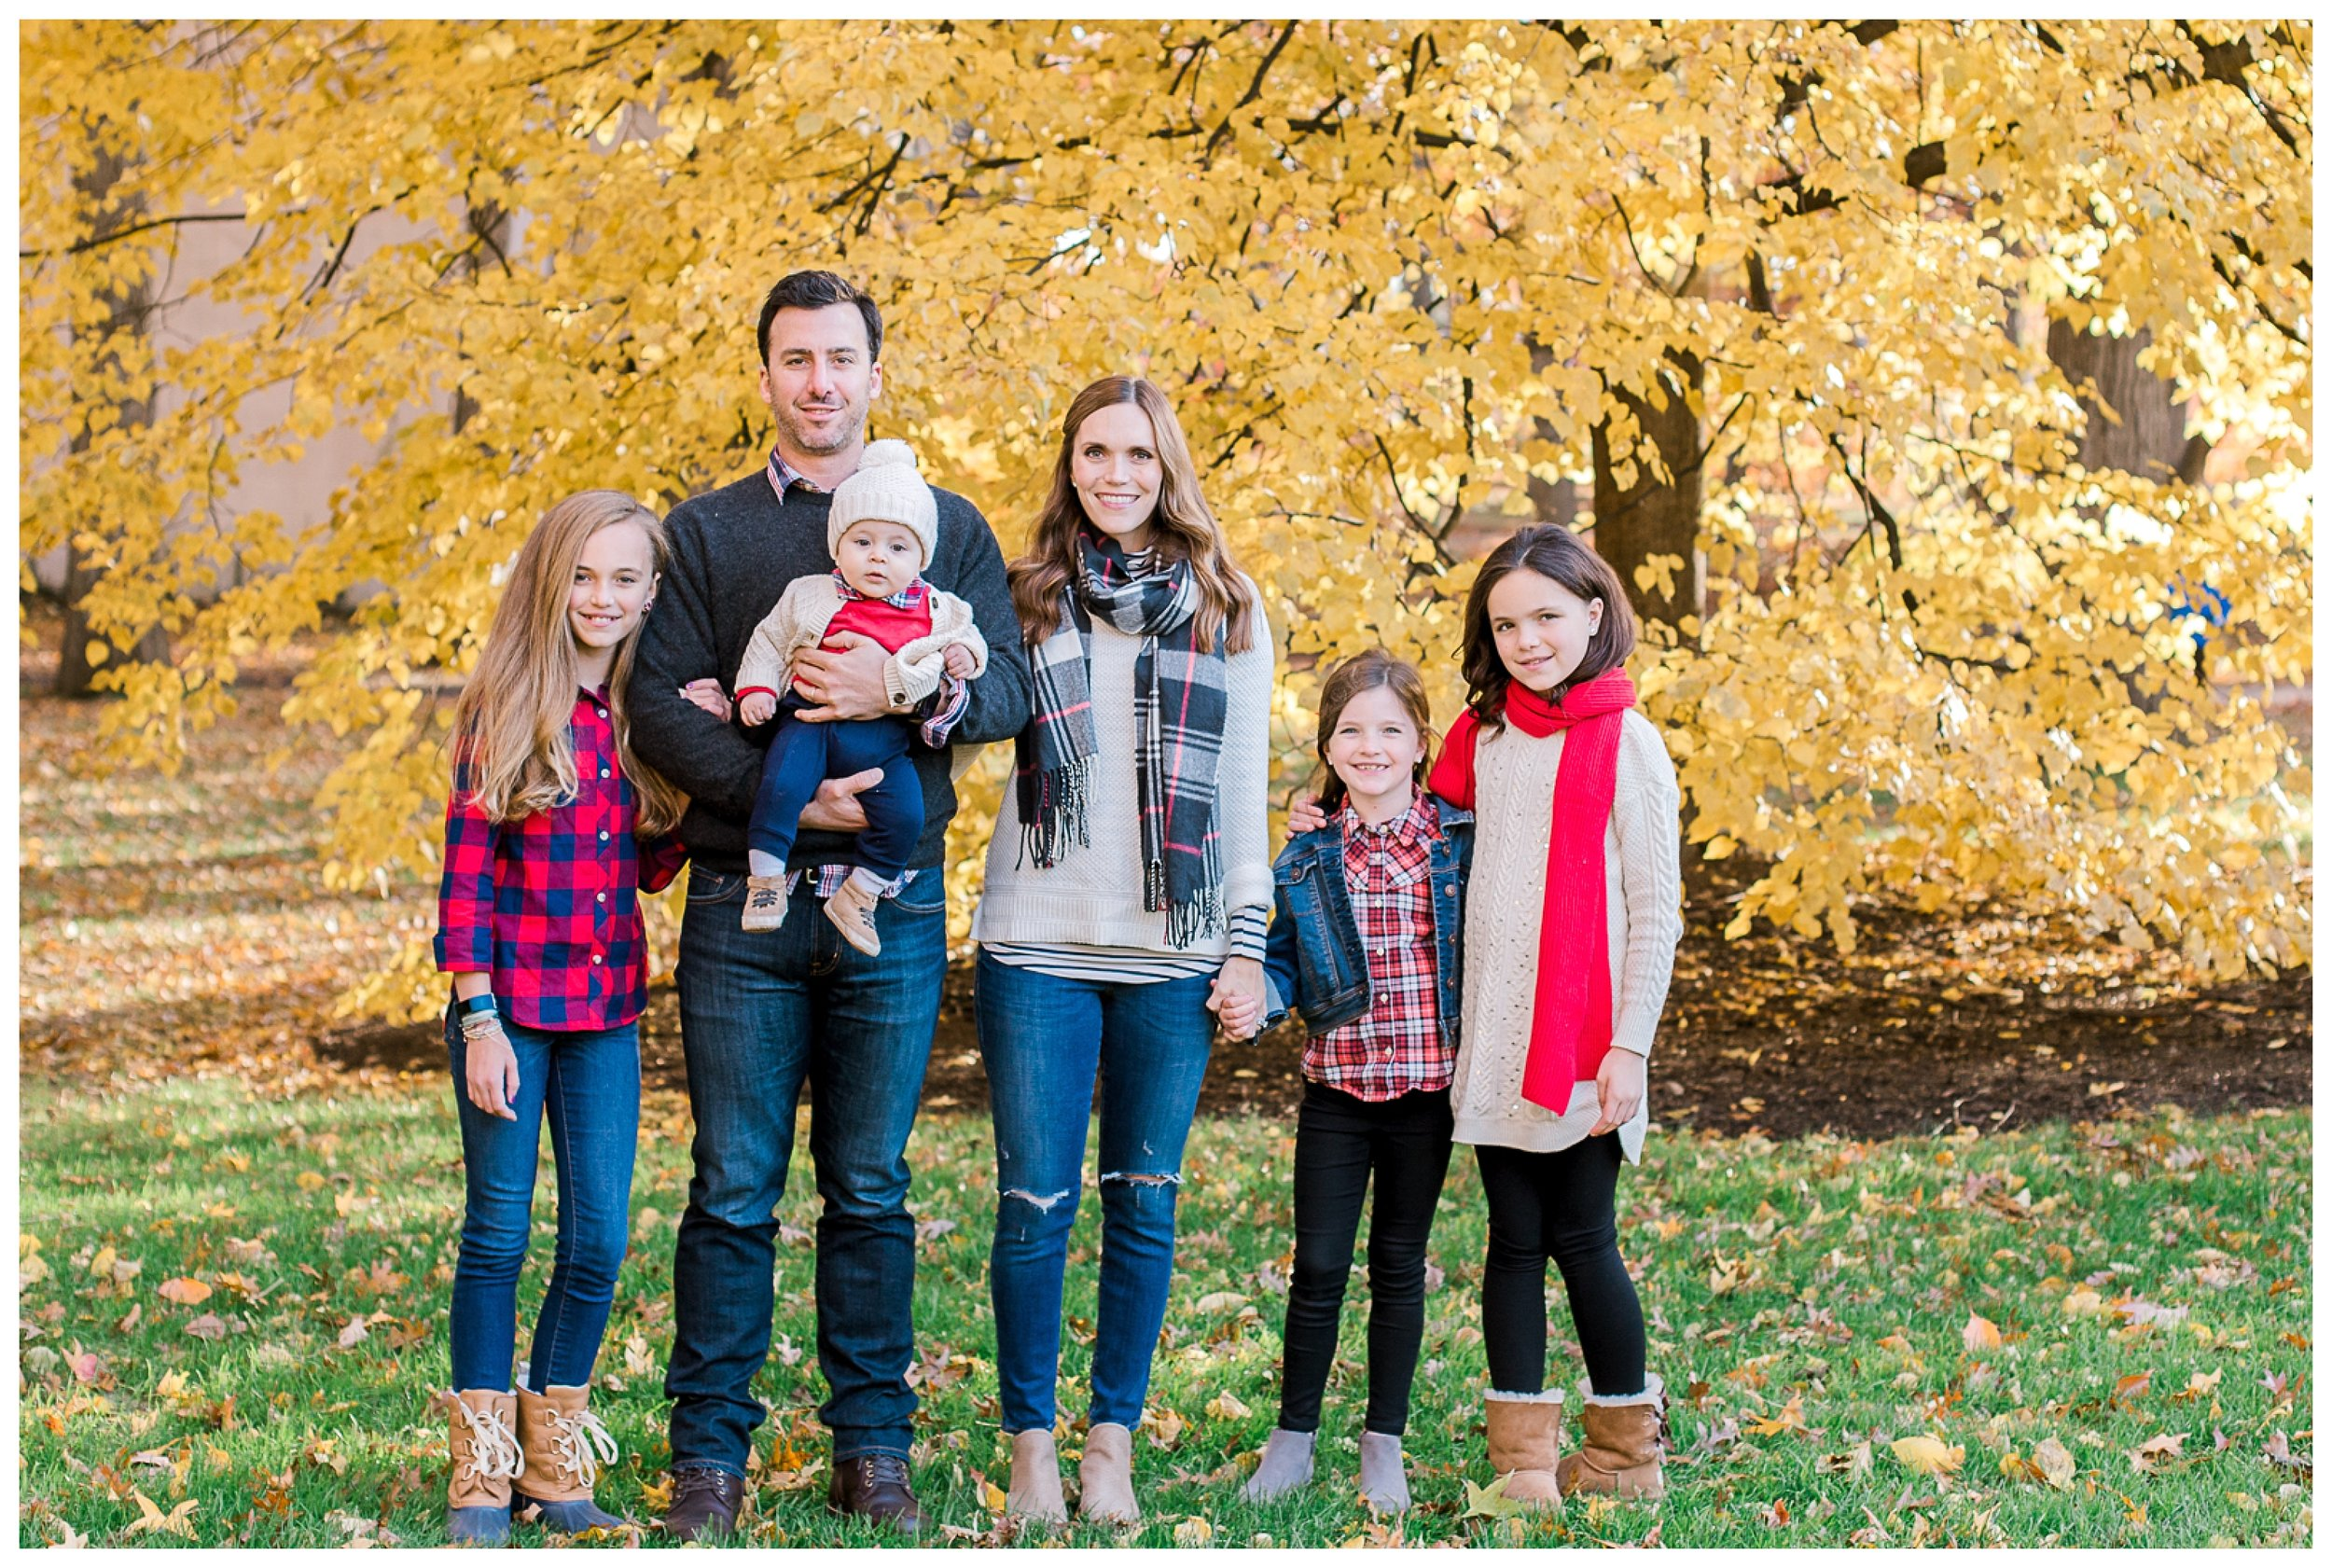 wellesley_college_fall_family_photos_erica_pezente_photography (2).jpg